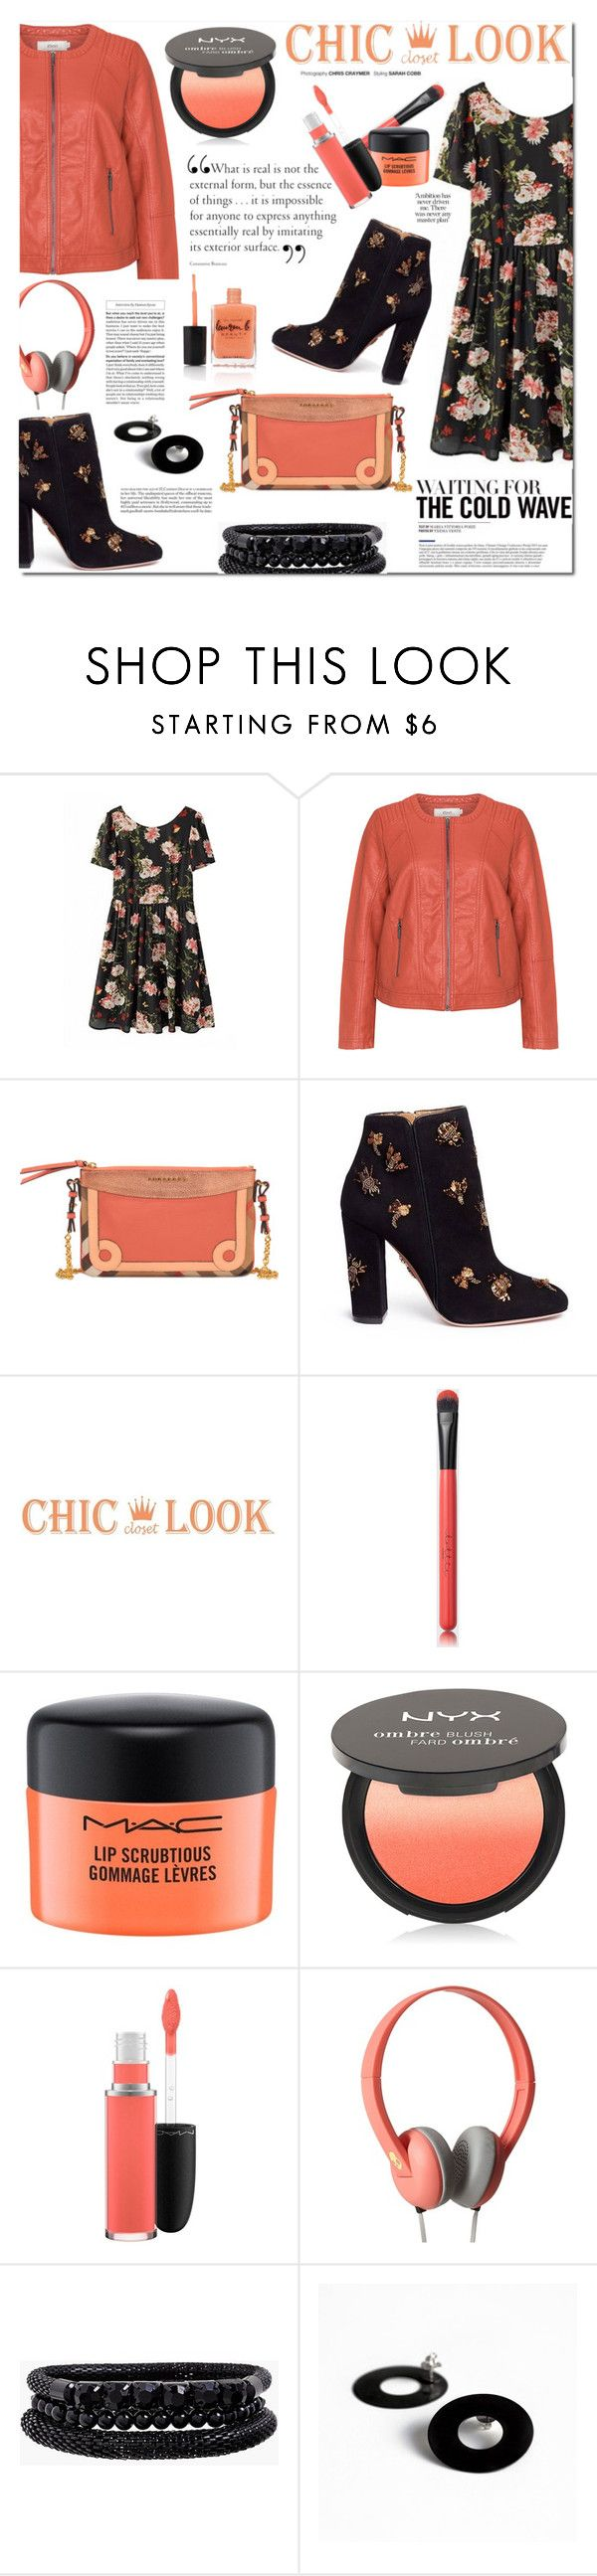 """Dark Floral fashion contest."" by patria ❤ liked on Polyvore featuring Zizzi, Burberry, Aquazzura, MAC Cosmetics, NYX, Skullcandy, Spring Street, B KREB, Lauren B. Beauty and fashionset"